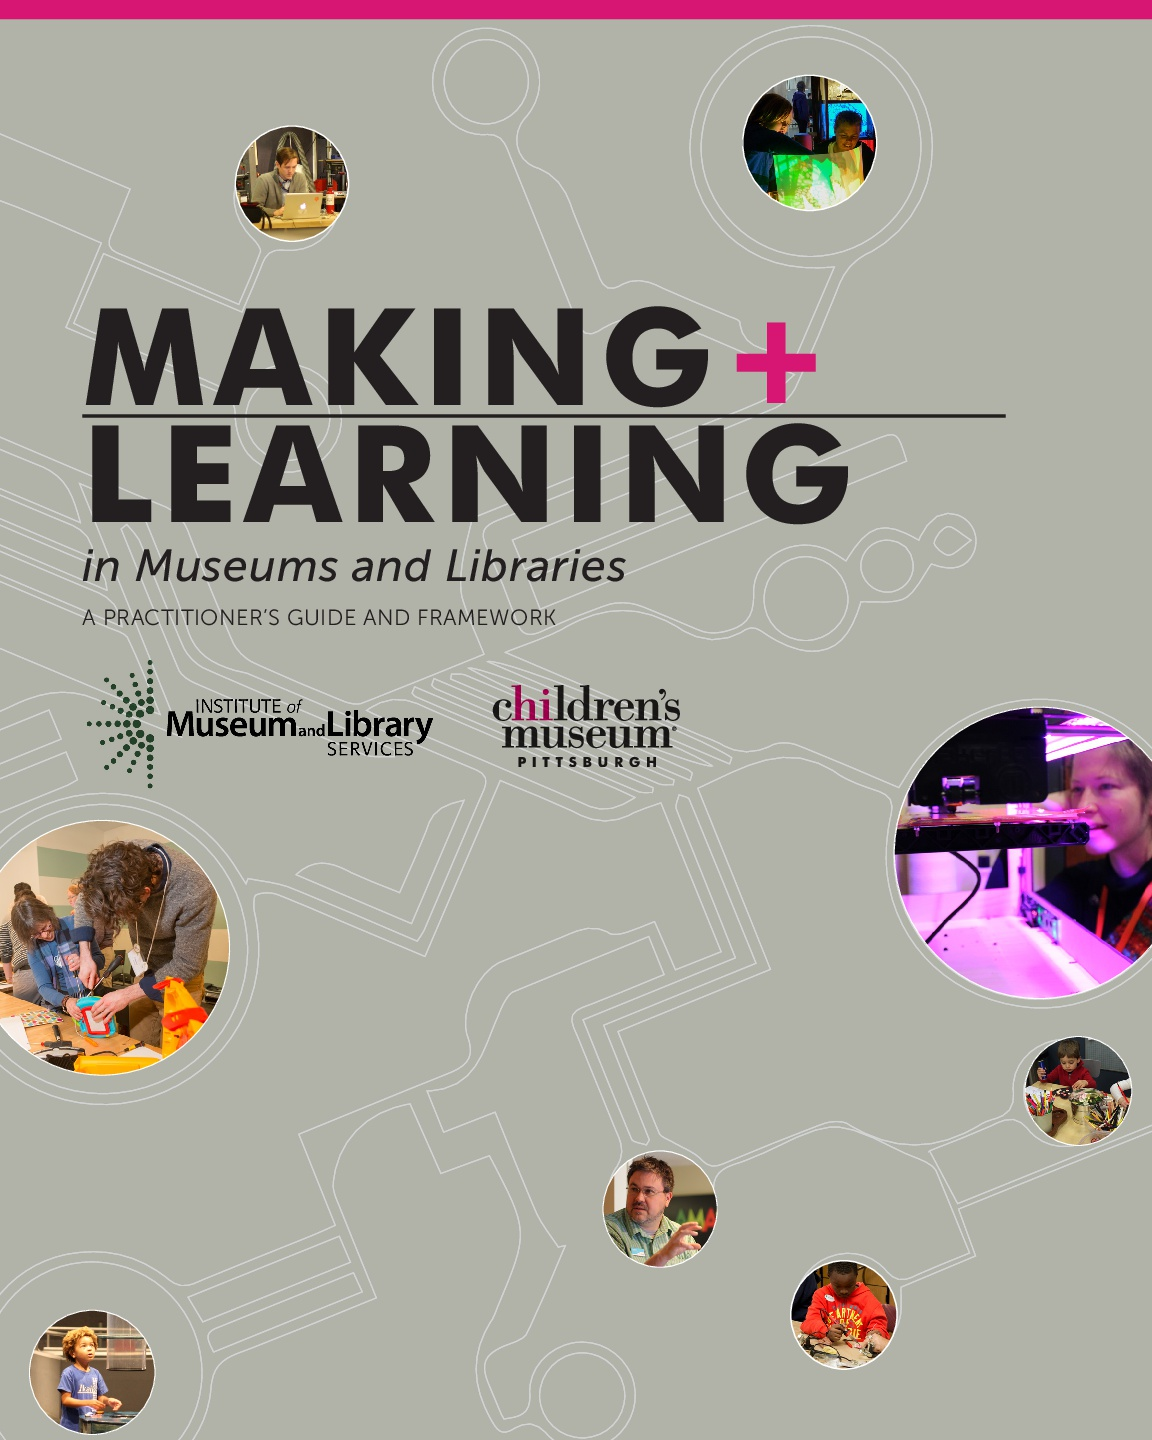 Making and Learning in Museums and Libraries.A Practitioner's Guide and Framework